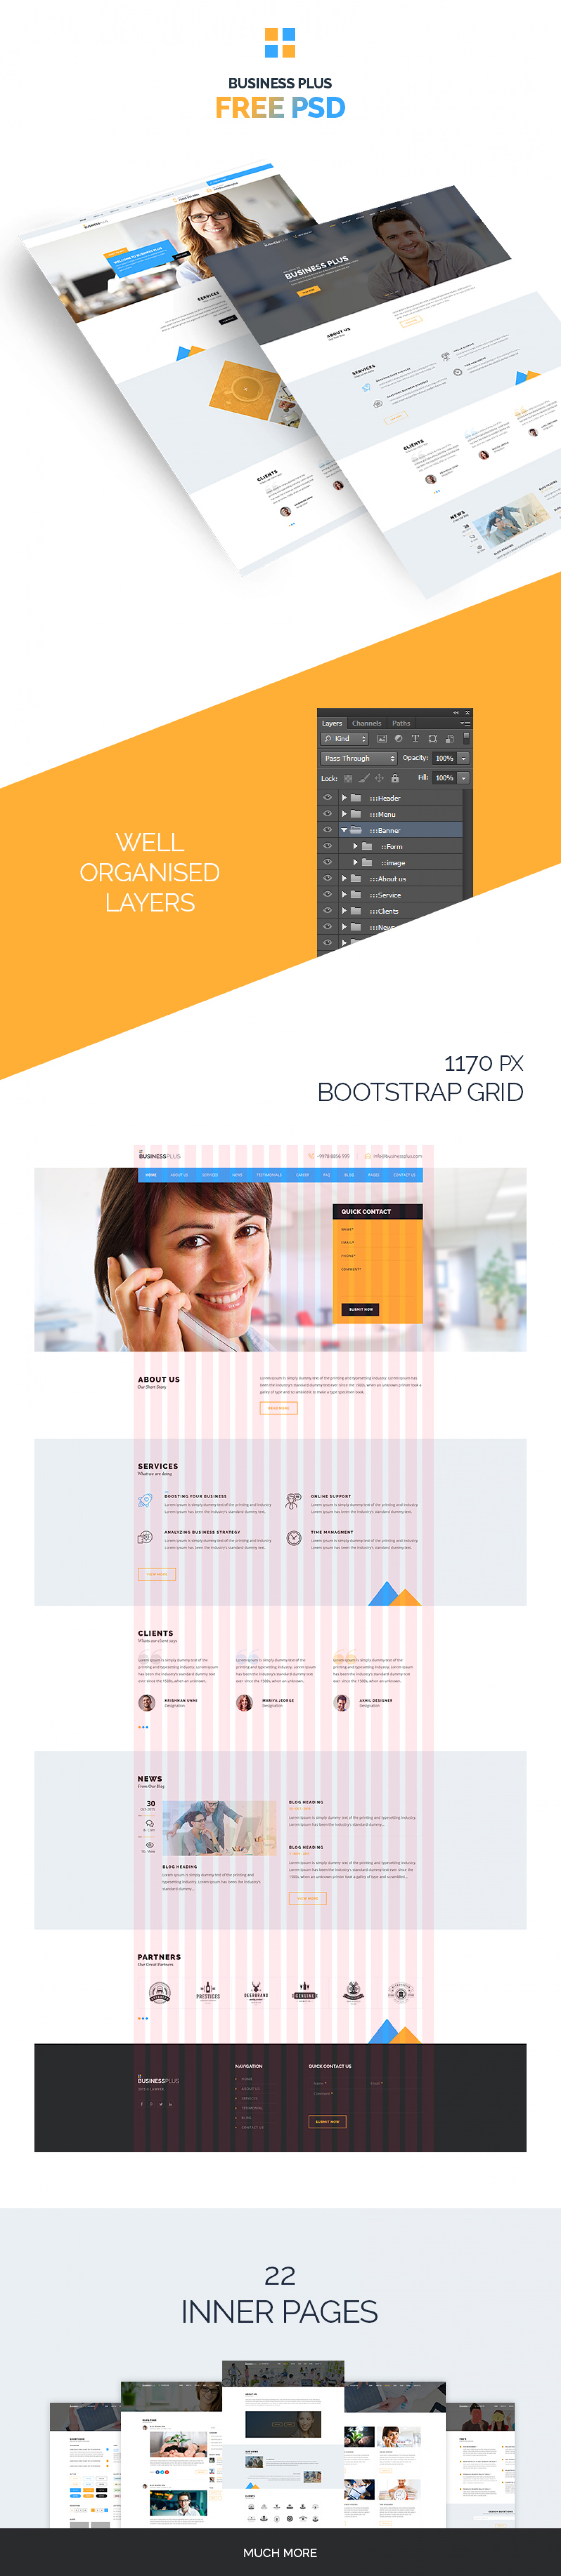 Business plus psd template download 13467 mb accmission Gallery